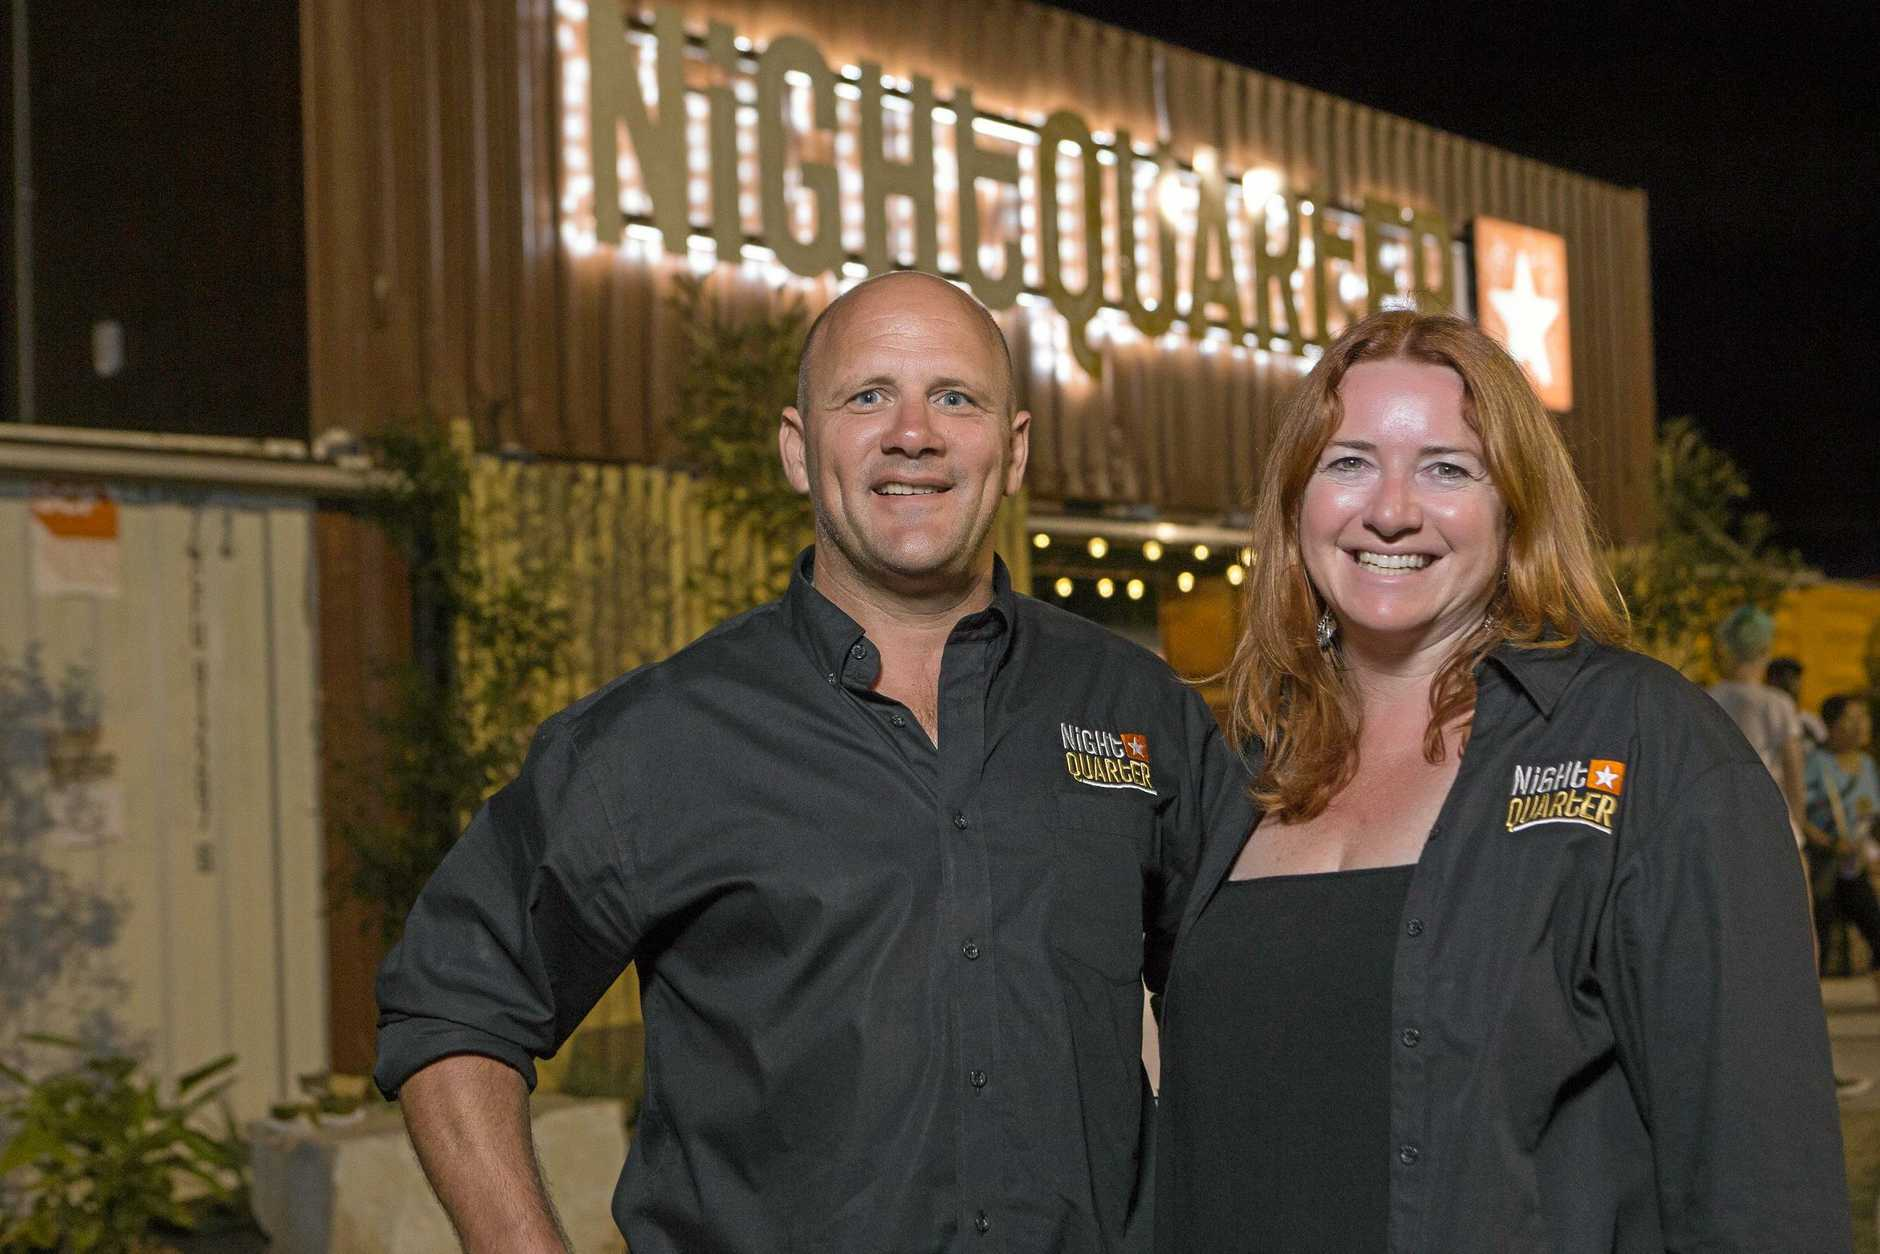 BIG MOVE: NightQuarter owners Ian Van der Woude and Michelle Christoe are moving to the Sunshine Coast.